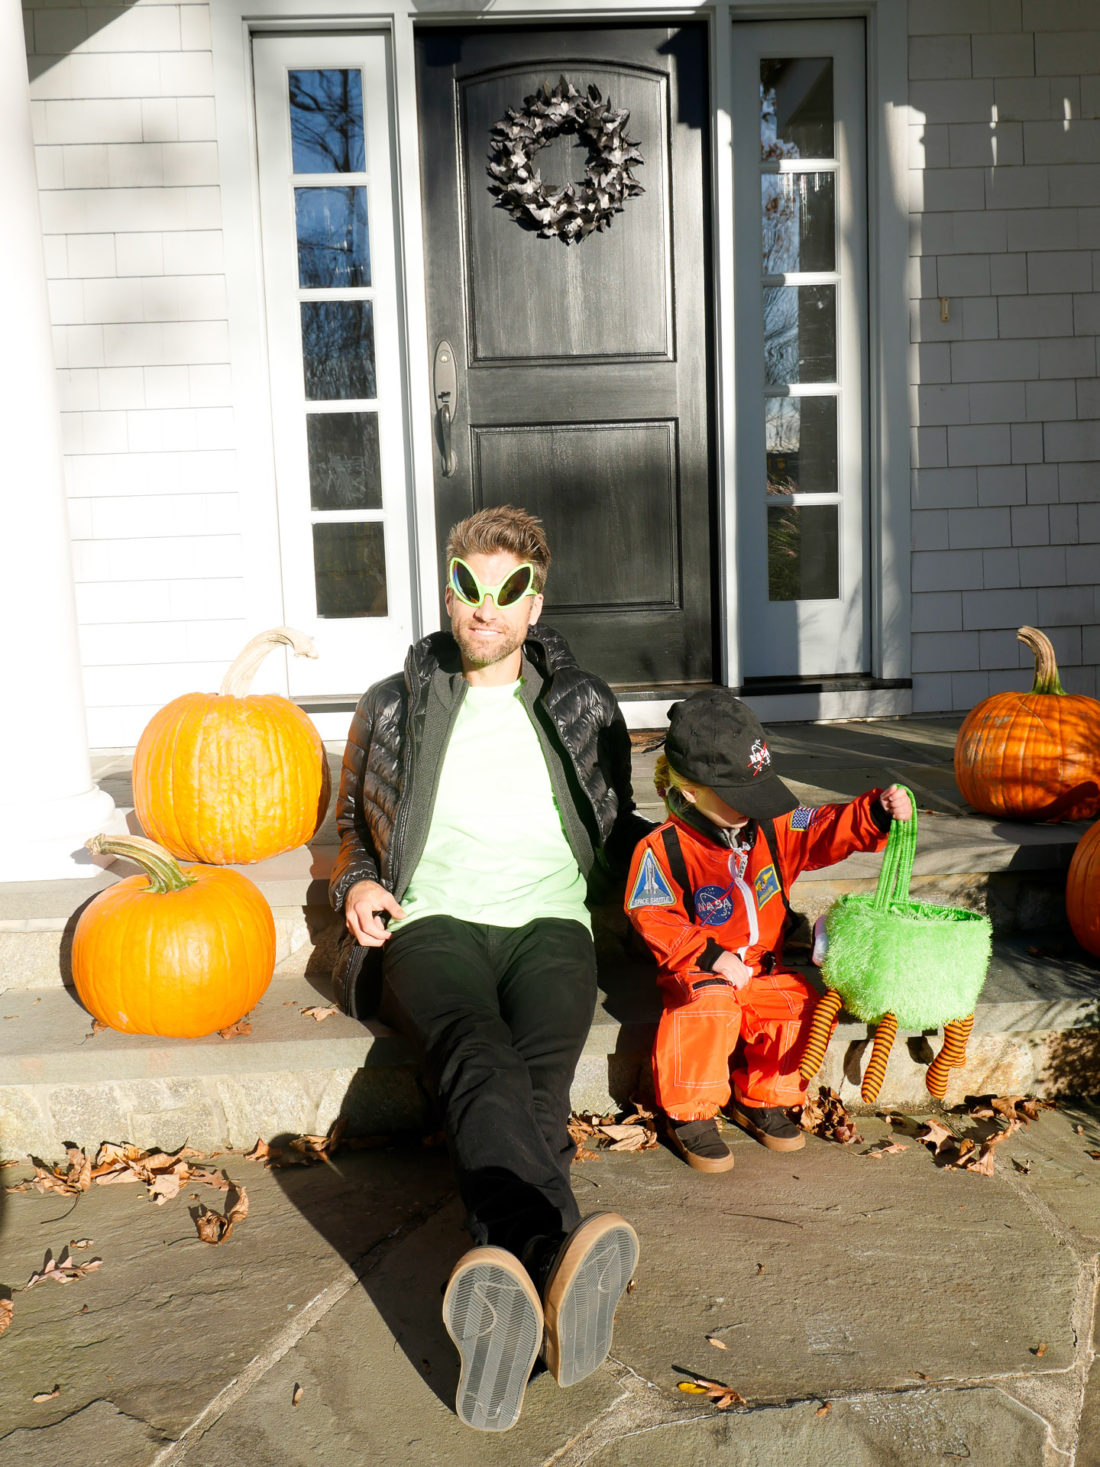 Kyle Martino and Marlowe Martino, sitting on the steps of their Connecticut home dressed as an Alien and an Astronaut for Halloween